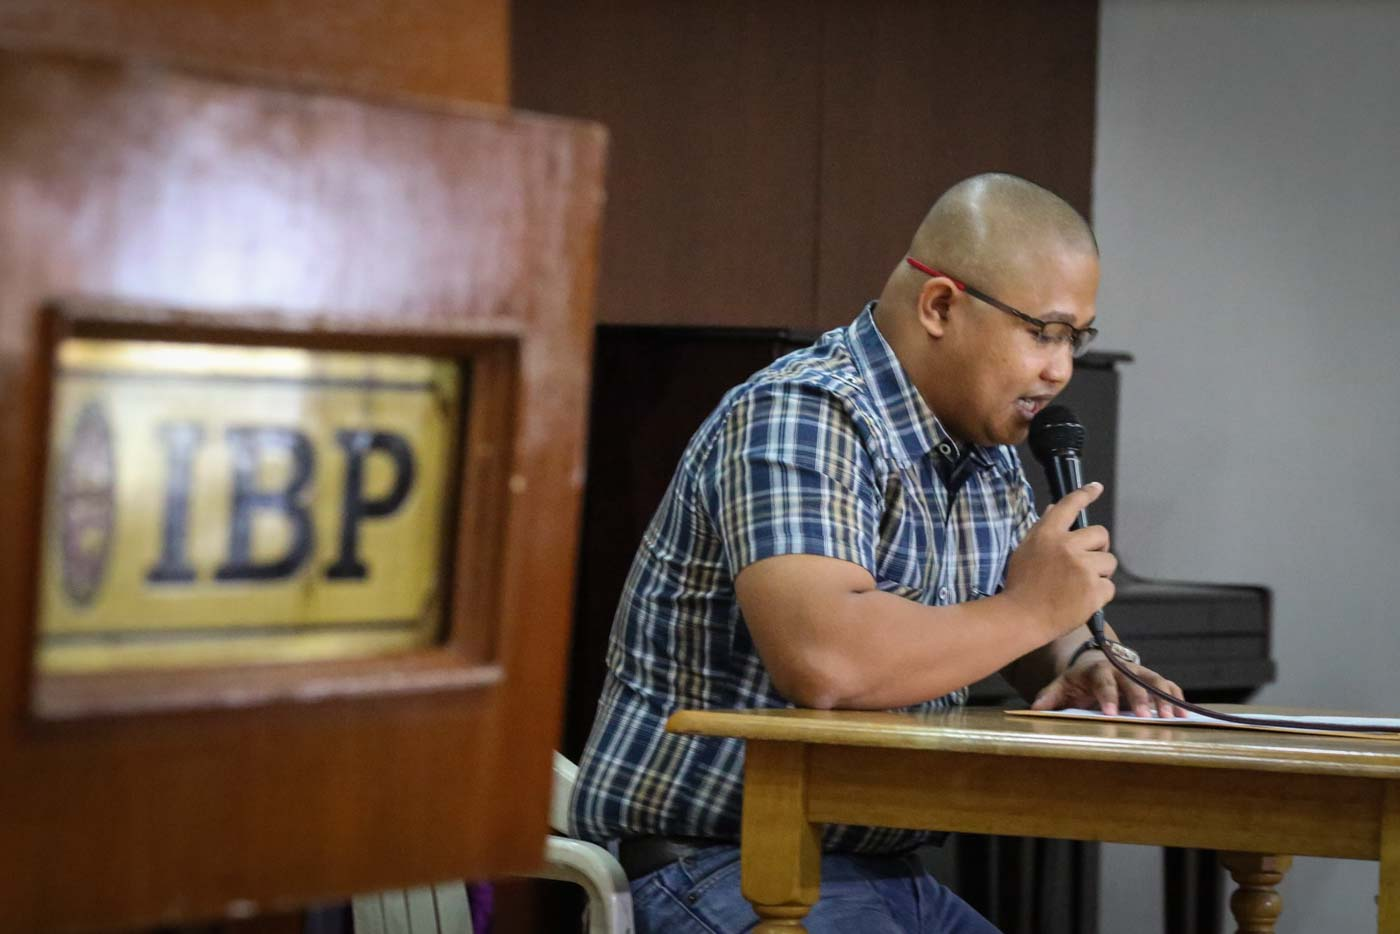 FIRST APPEARANCE. Peter Joemel Advincula aka Bikoy, the hooded man behind the controversial videos linking President Duterte's family to drugs, surfaces at the Integrated Bar of the Philippines on May 6, 2019. Photo by Jire Carreon/Rappler